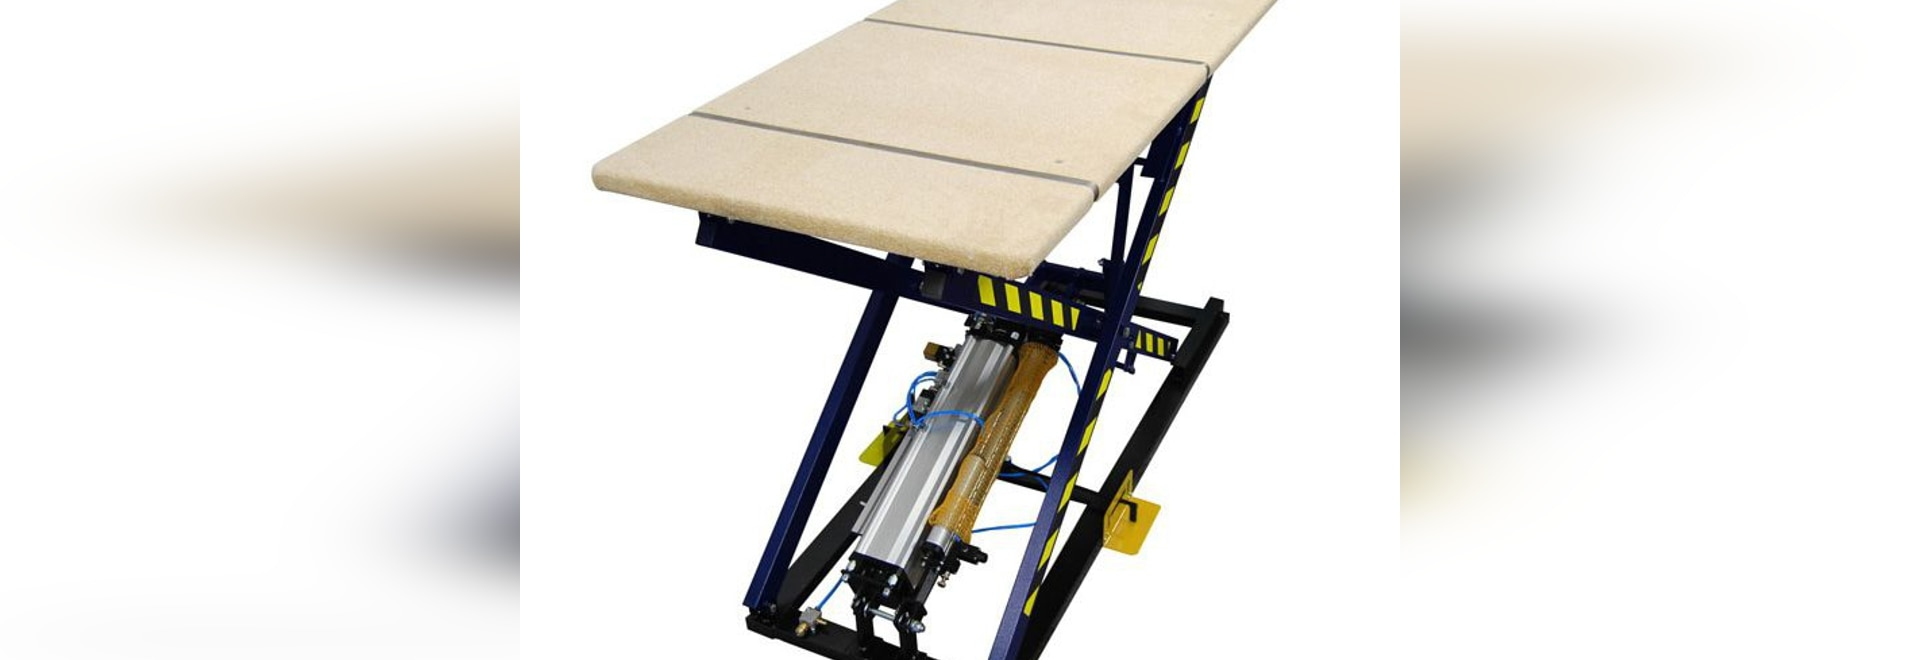 NEW: pneumatic lift table by REXEL